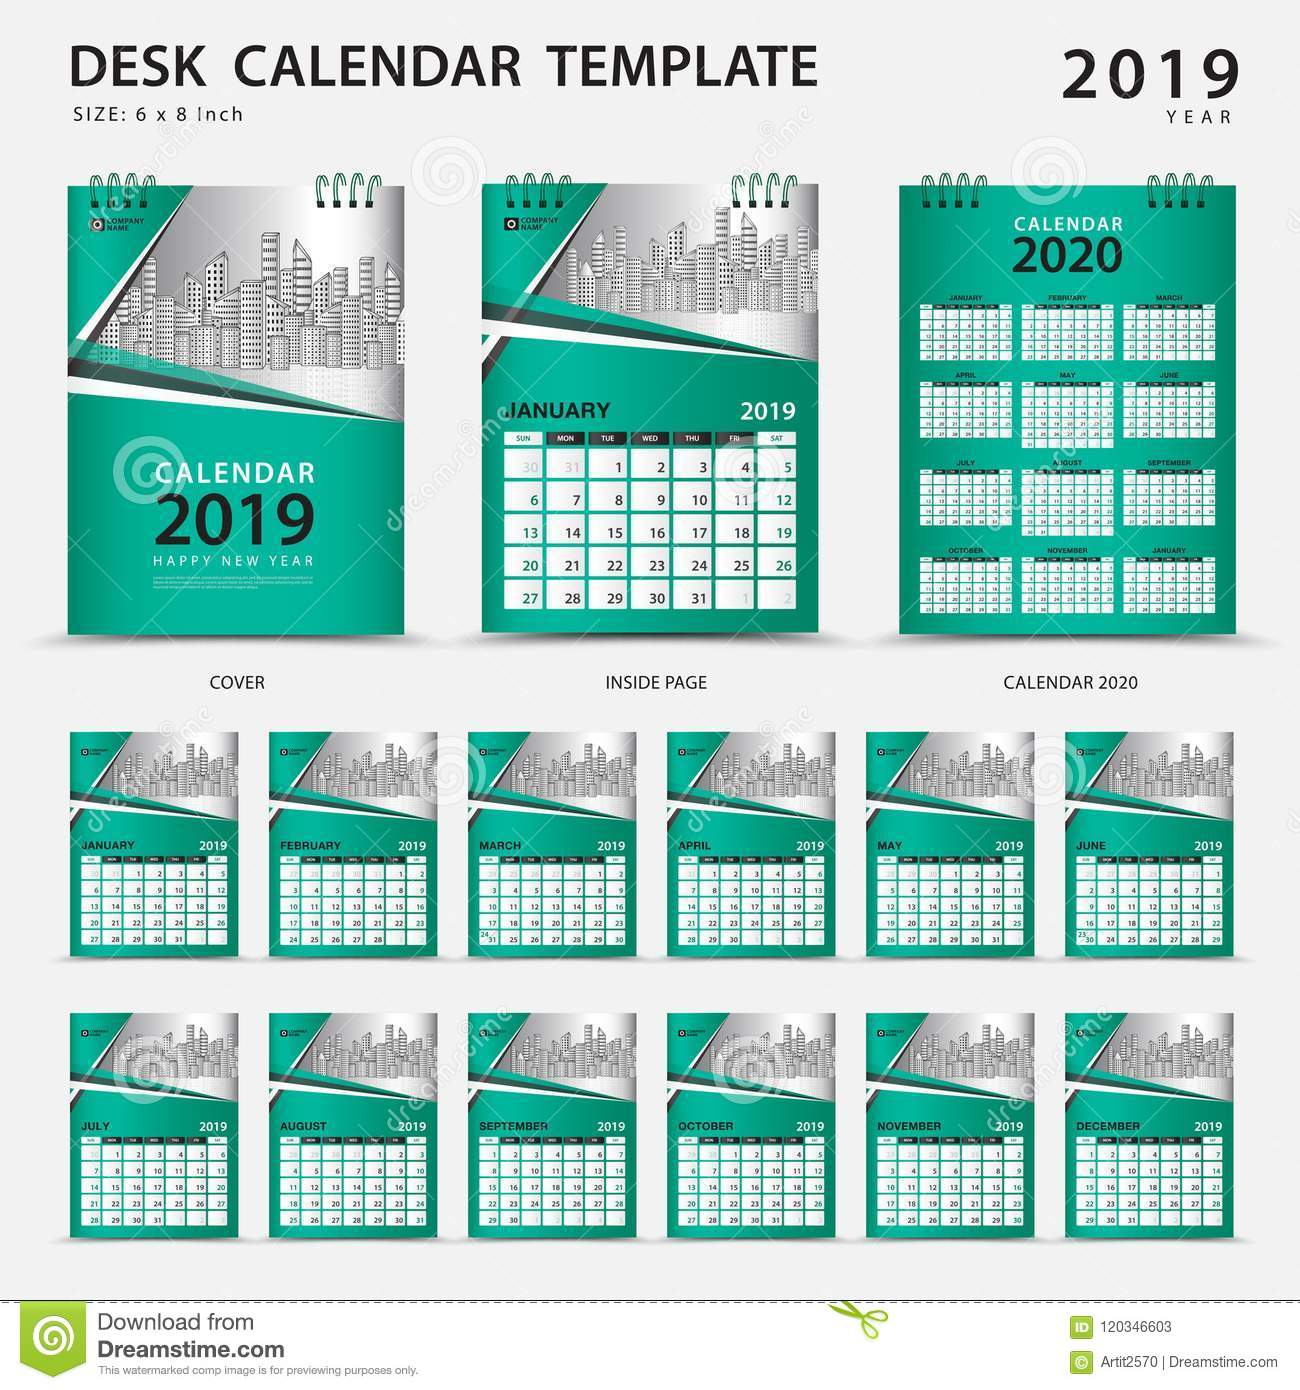 desk calendar 2019 template set of 12 months planner week starts